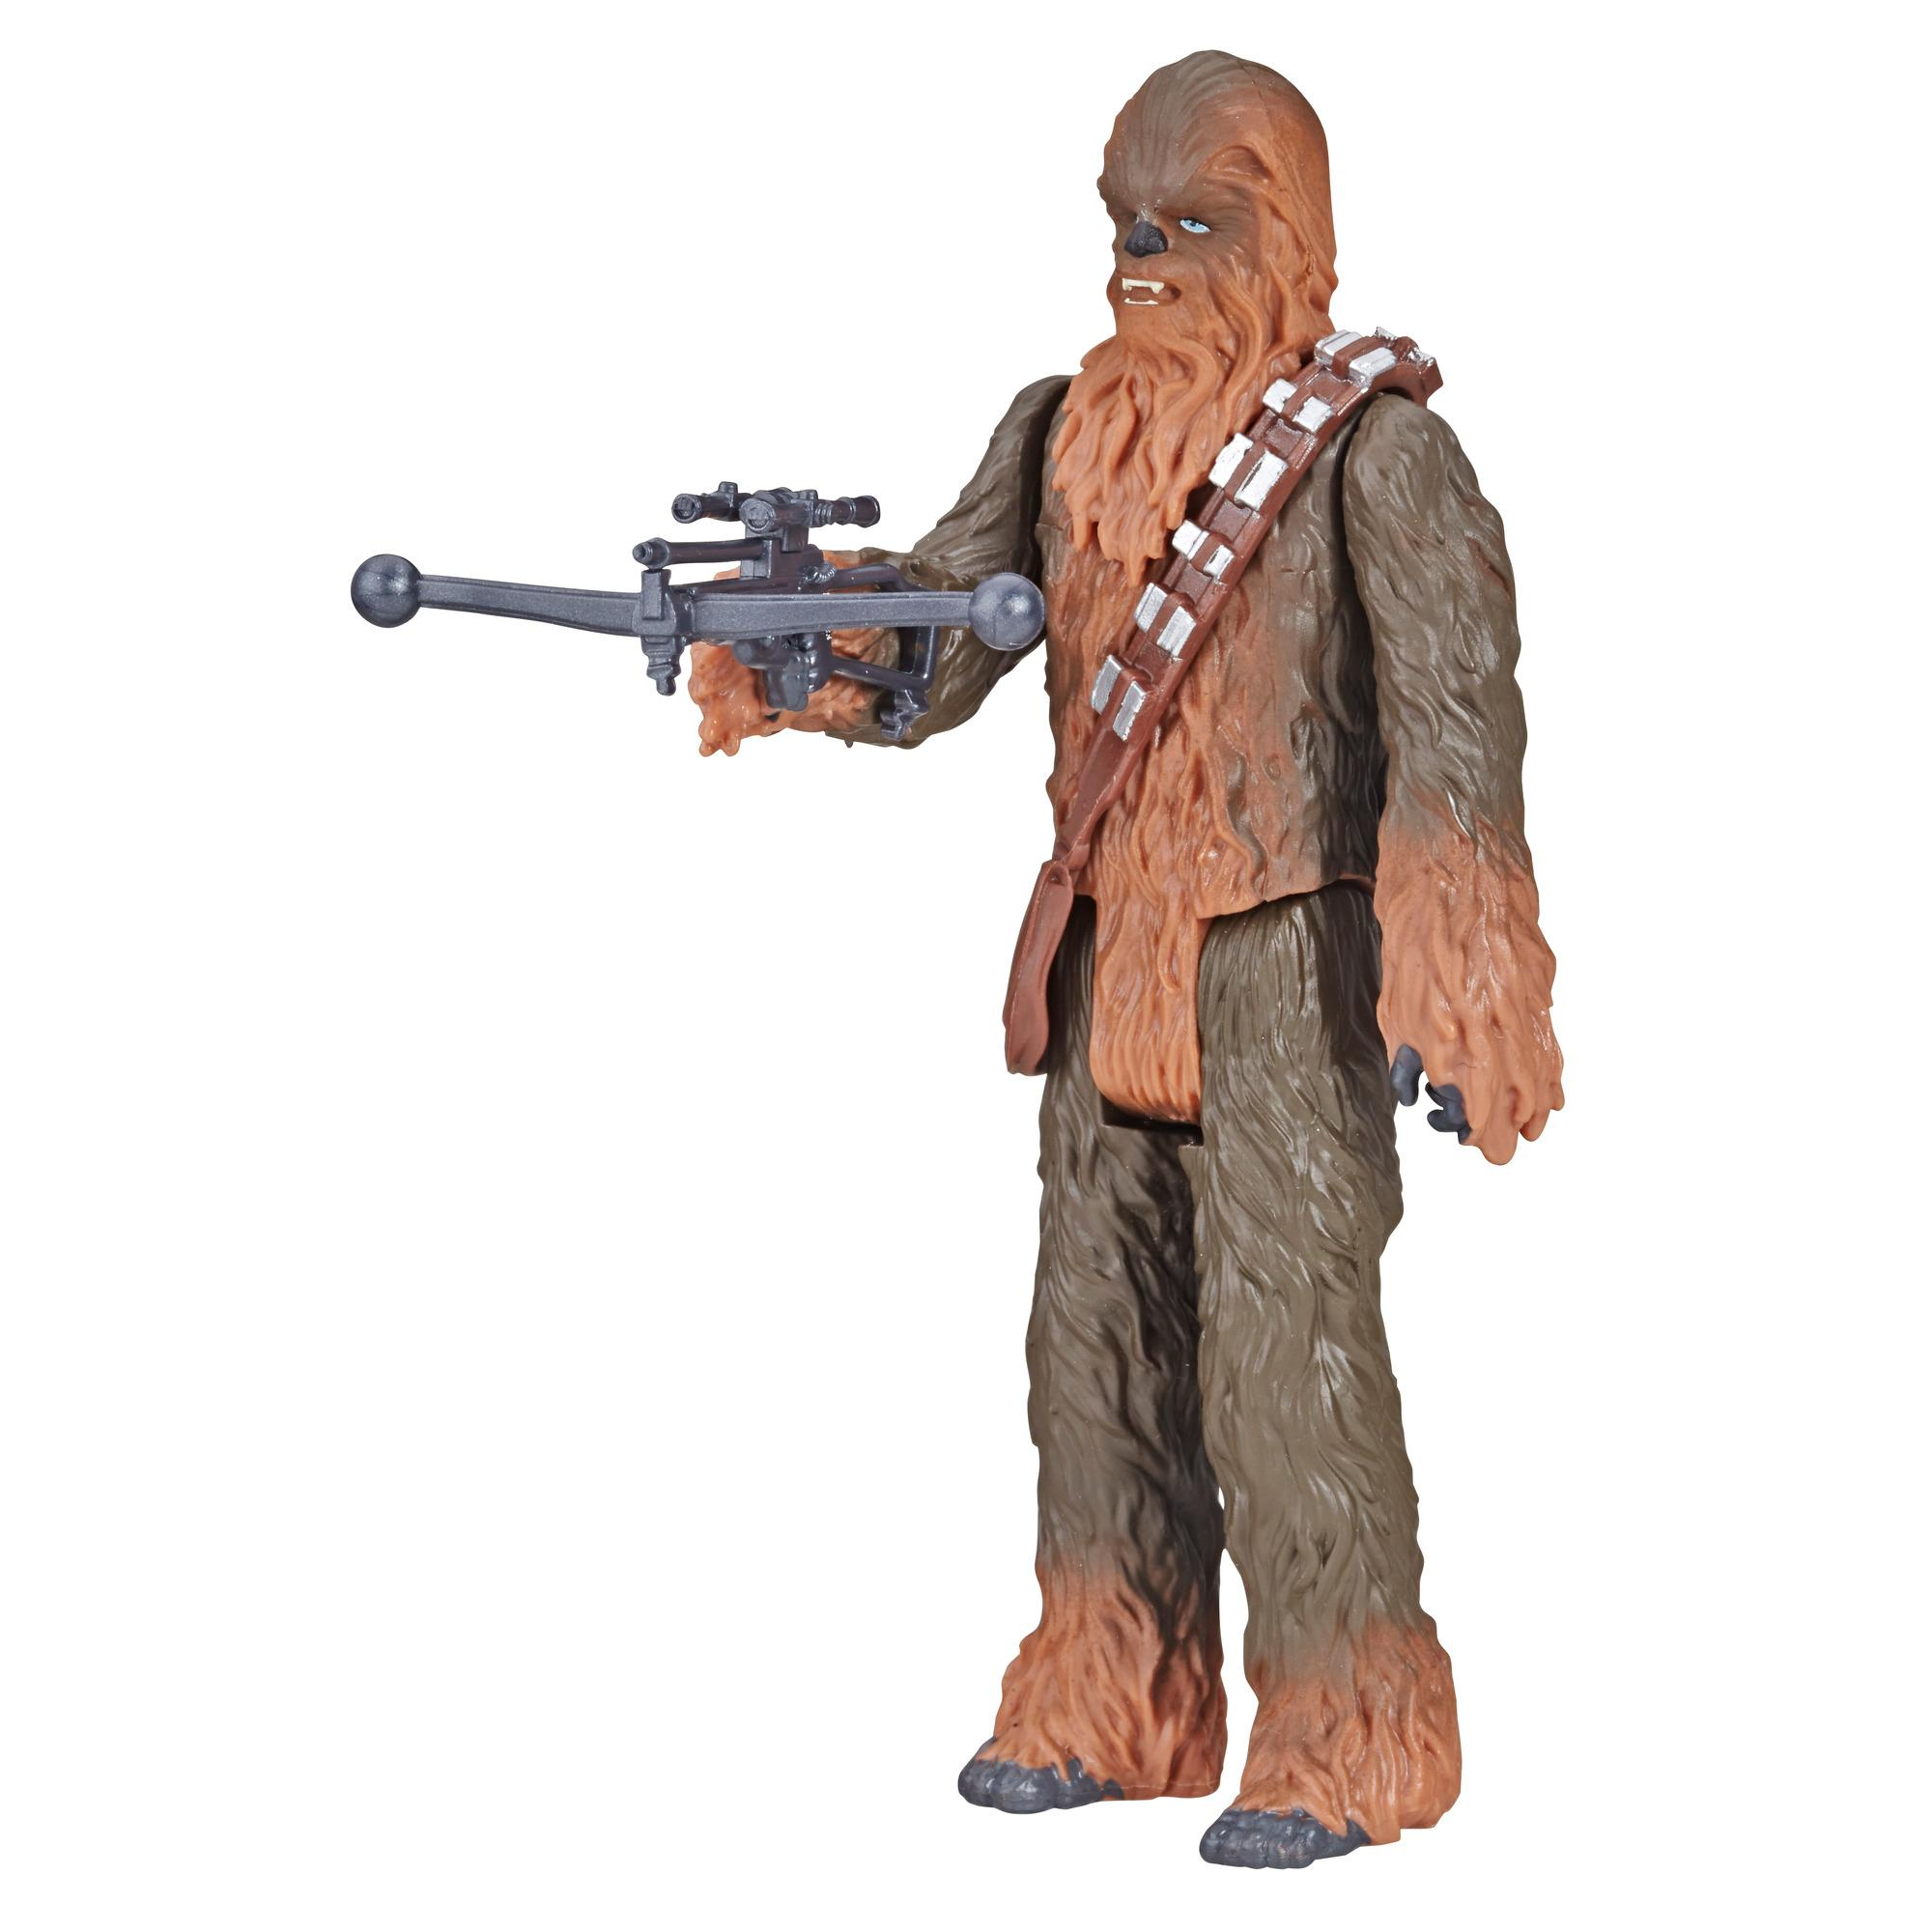 Star Wars Galaxy of Adventures - Figura de Chewbacca y minihistorieta